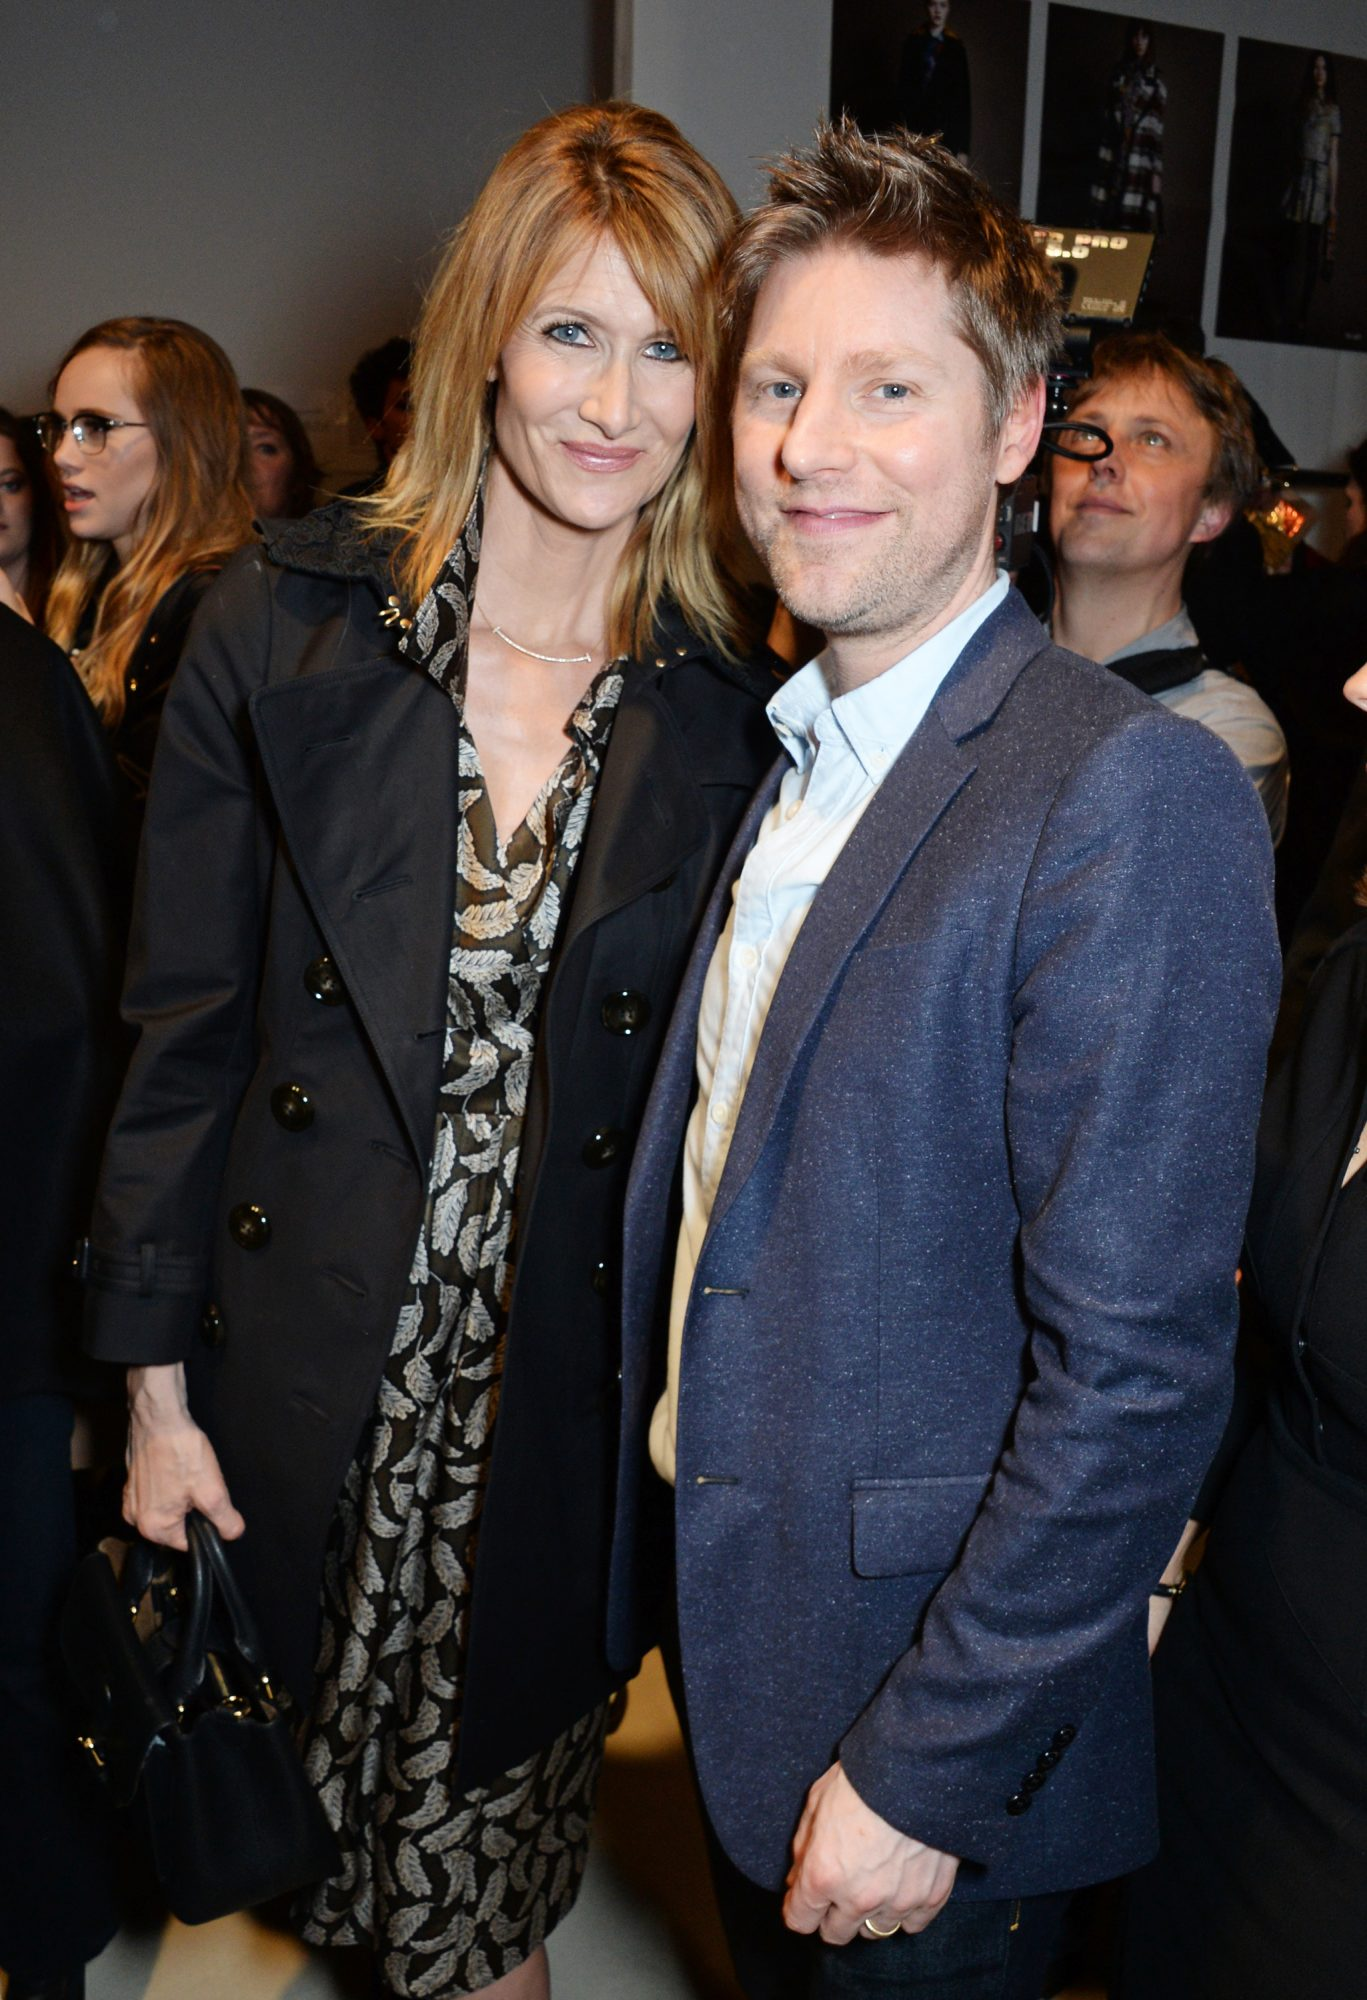 picture-of-christopher-bailey-and-laura-dern-photo.jpg